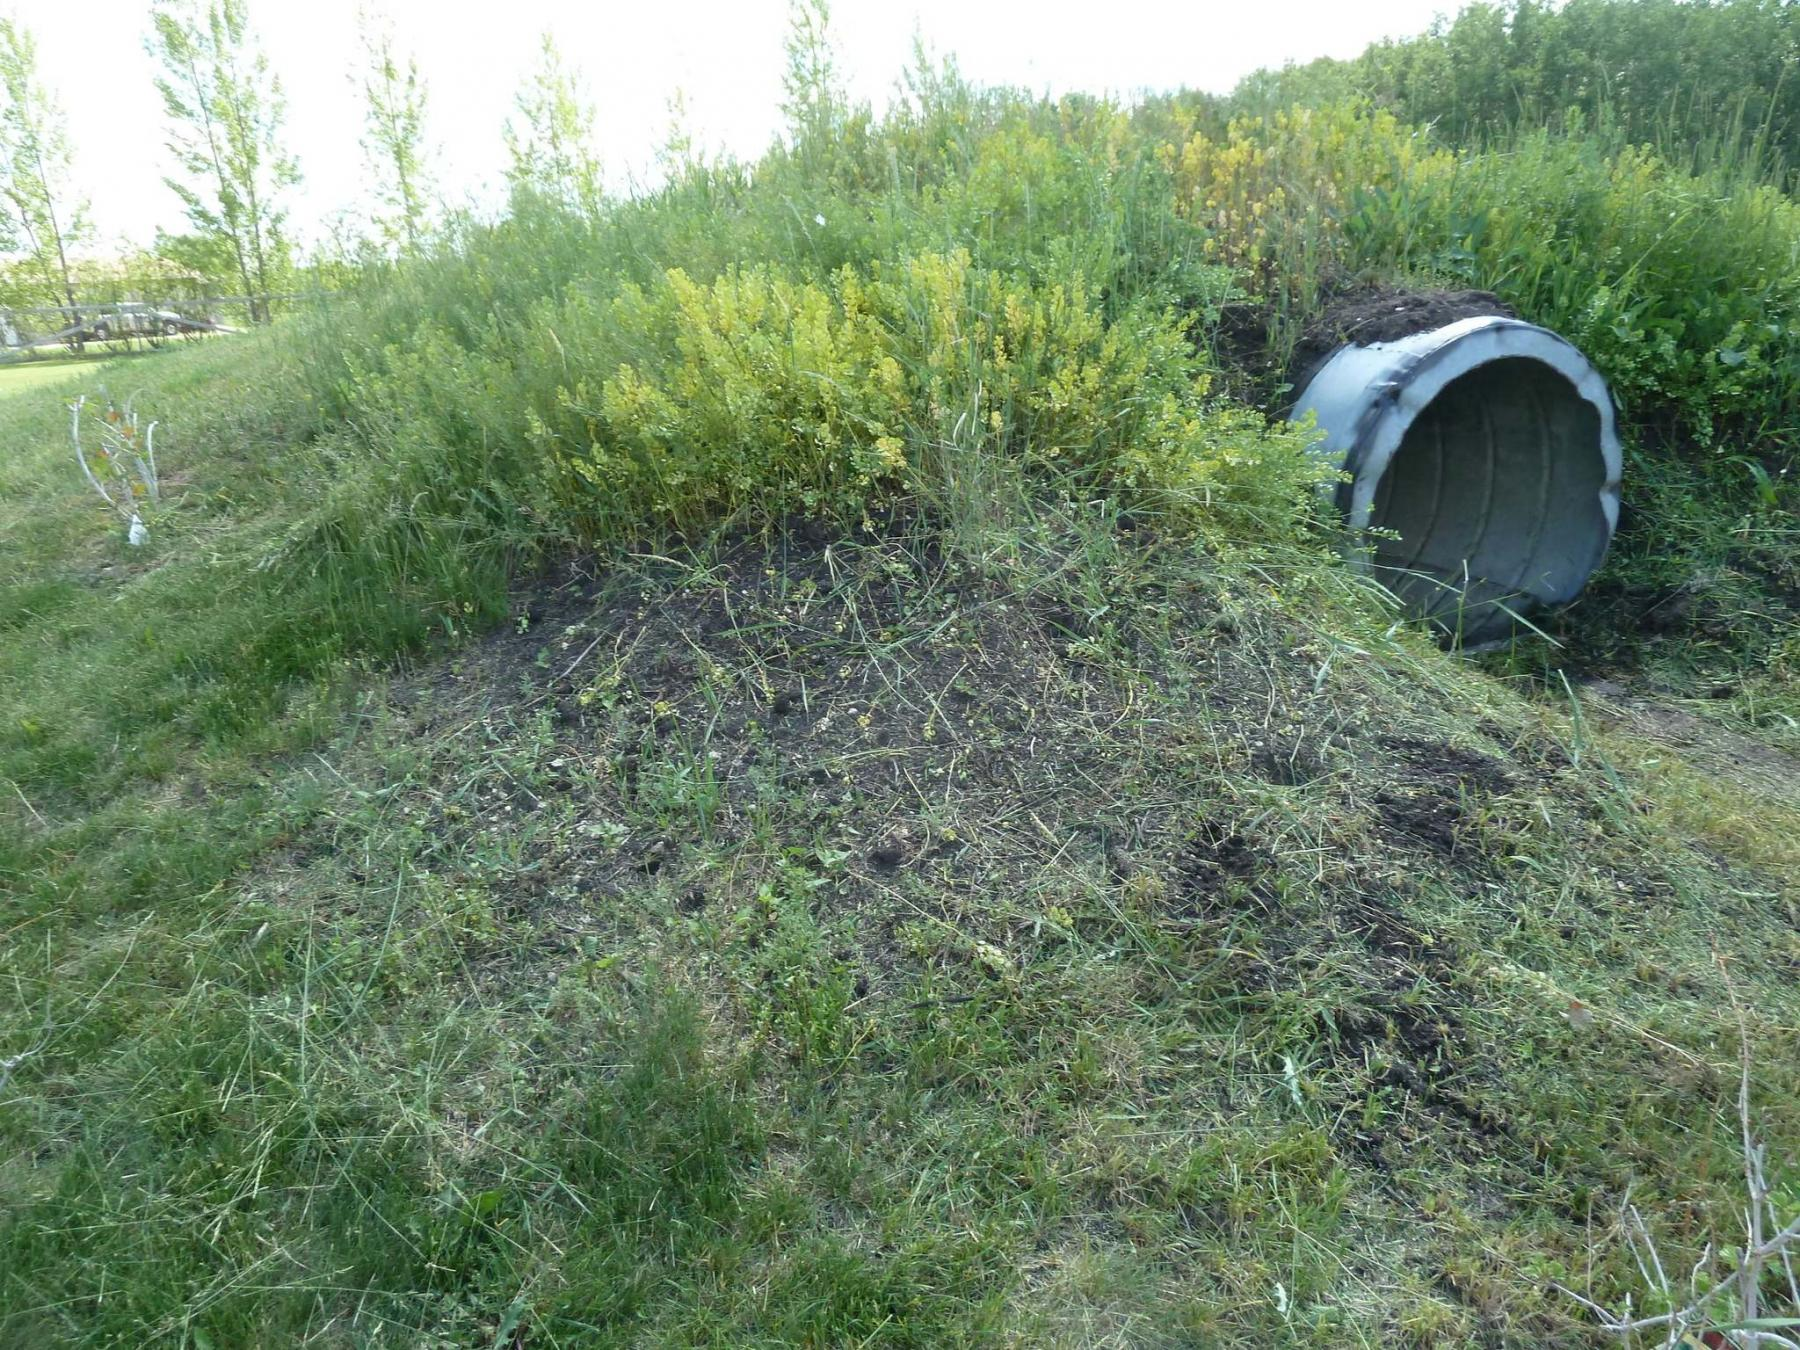 <p>LAURIE MUSTARD / WINNIPEG FREE PRESS</p><p>A concrete culvert marks the tunnel entrance to the tornado shelter buried under lawn-type soil.</p></p>